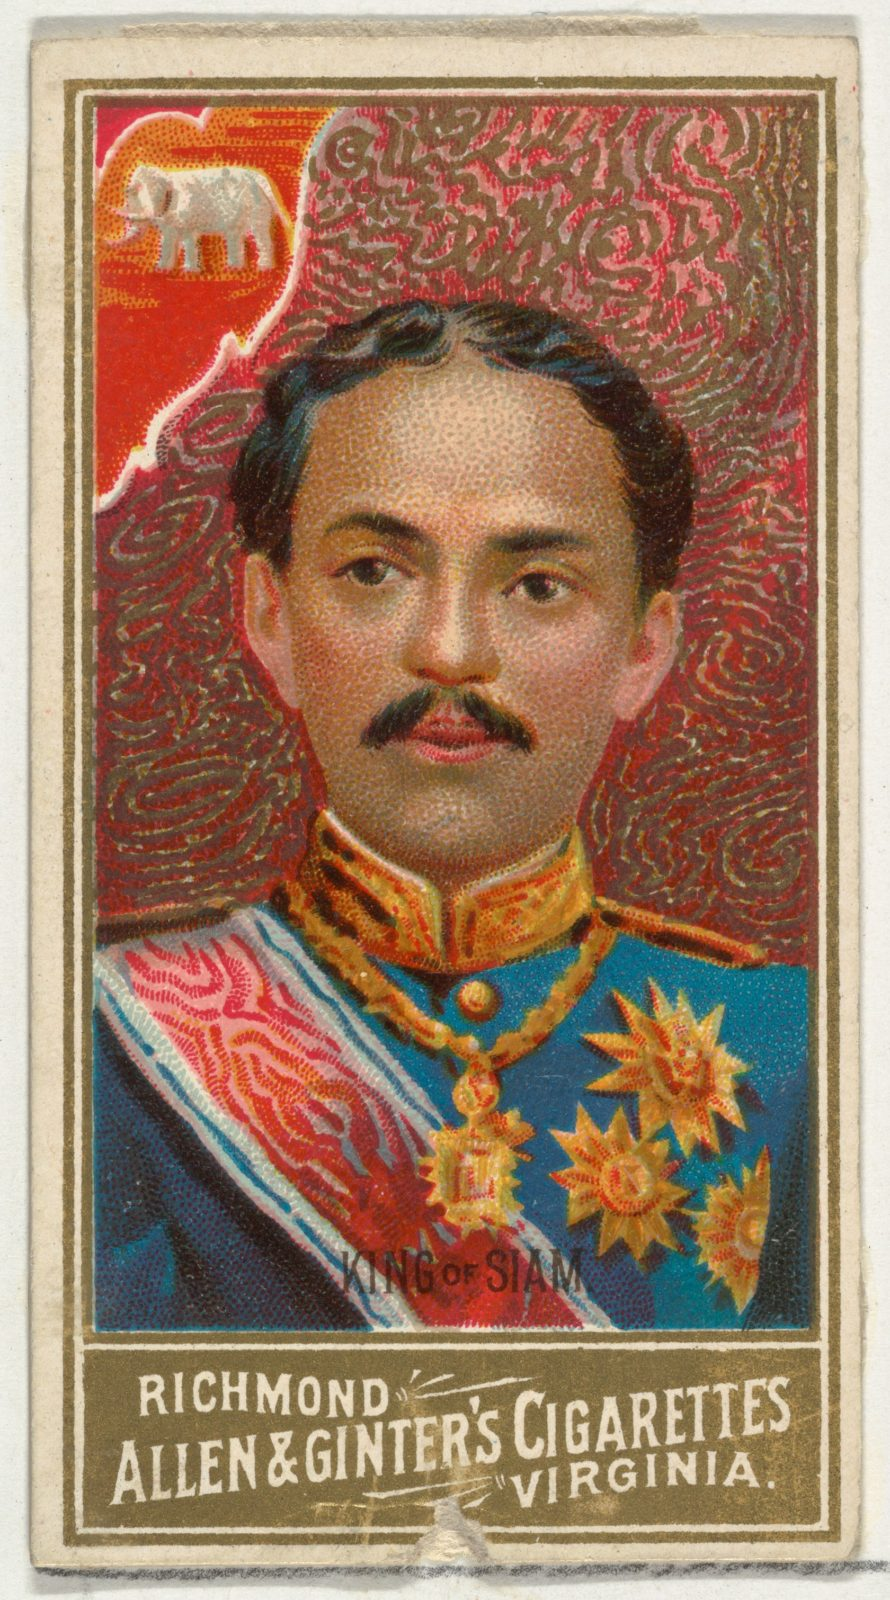 King of Siam, from World's Sovereigns series (N34) for Allen & Ginter Cigarettes